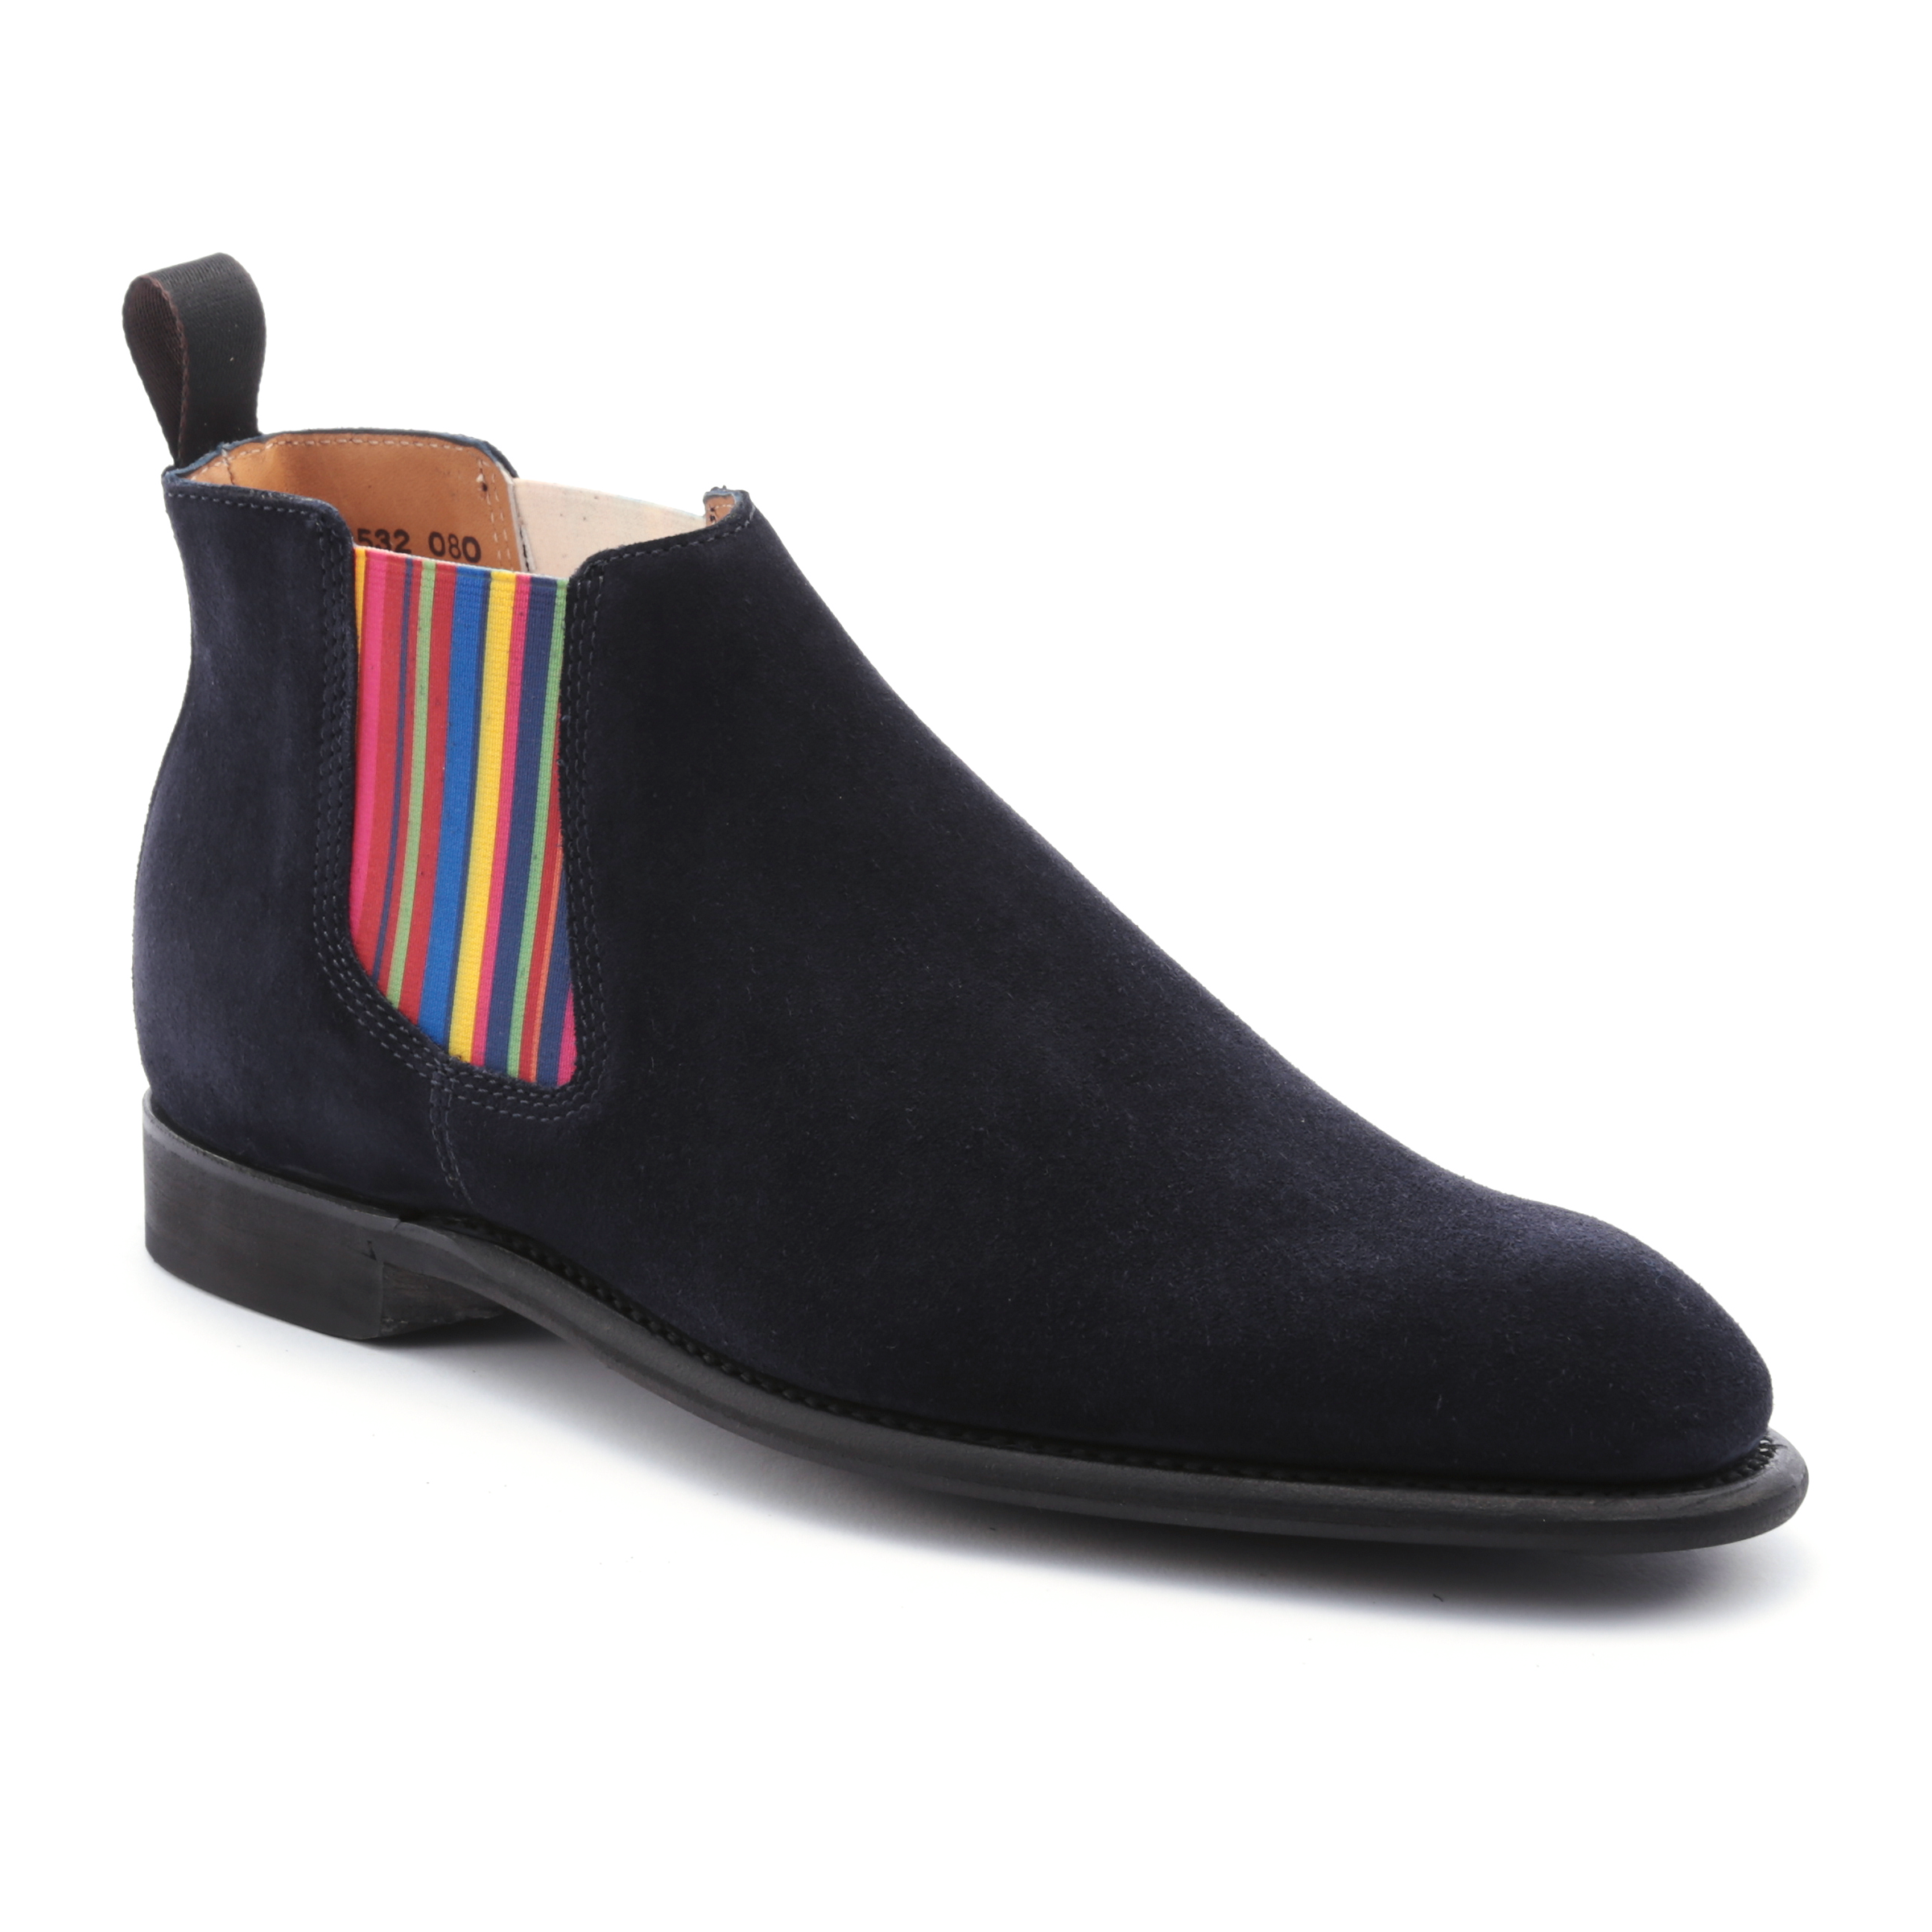 BowenChaussures hommeChaussure et by Rookery Boots SpVUzM